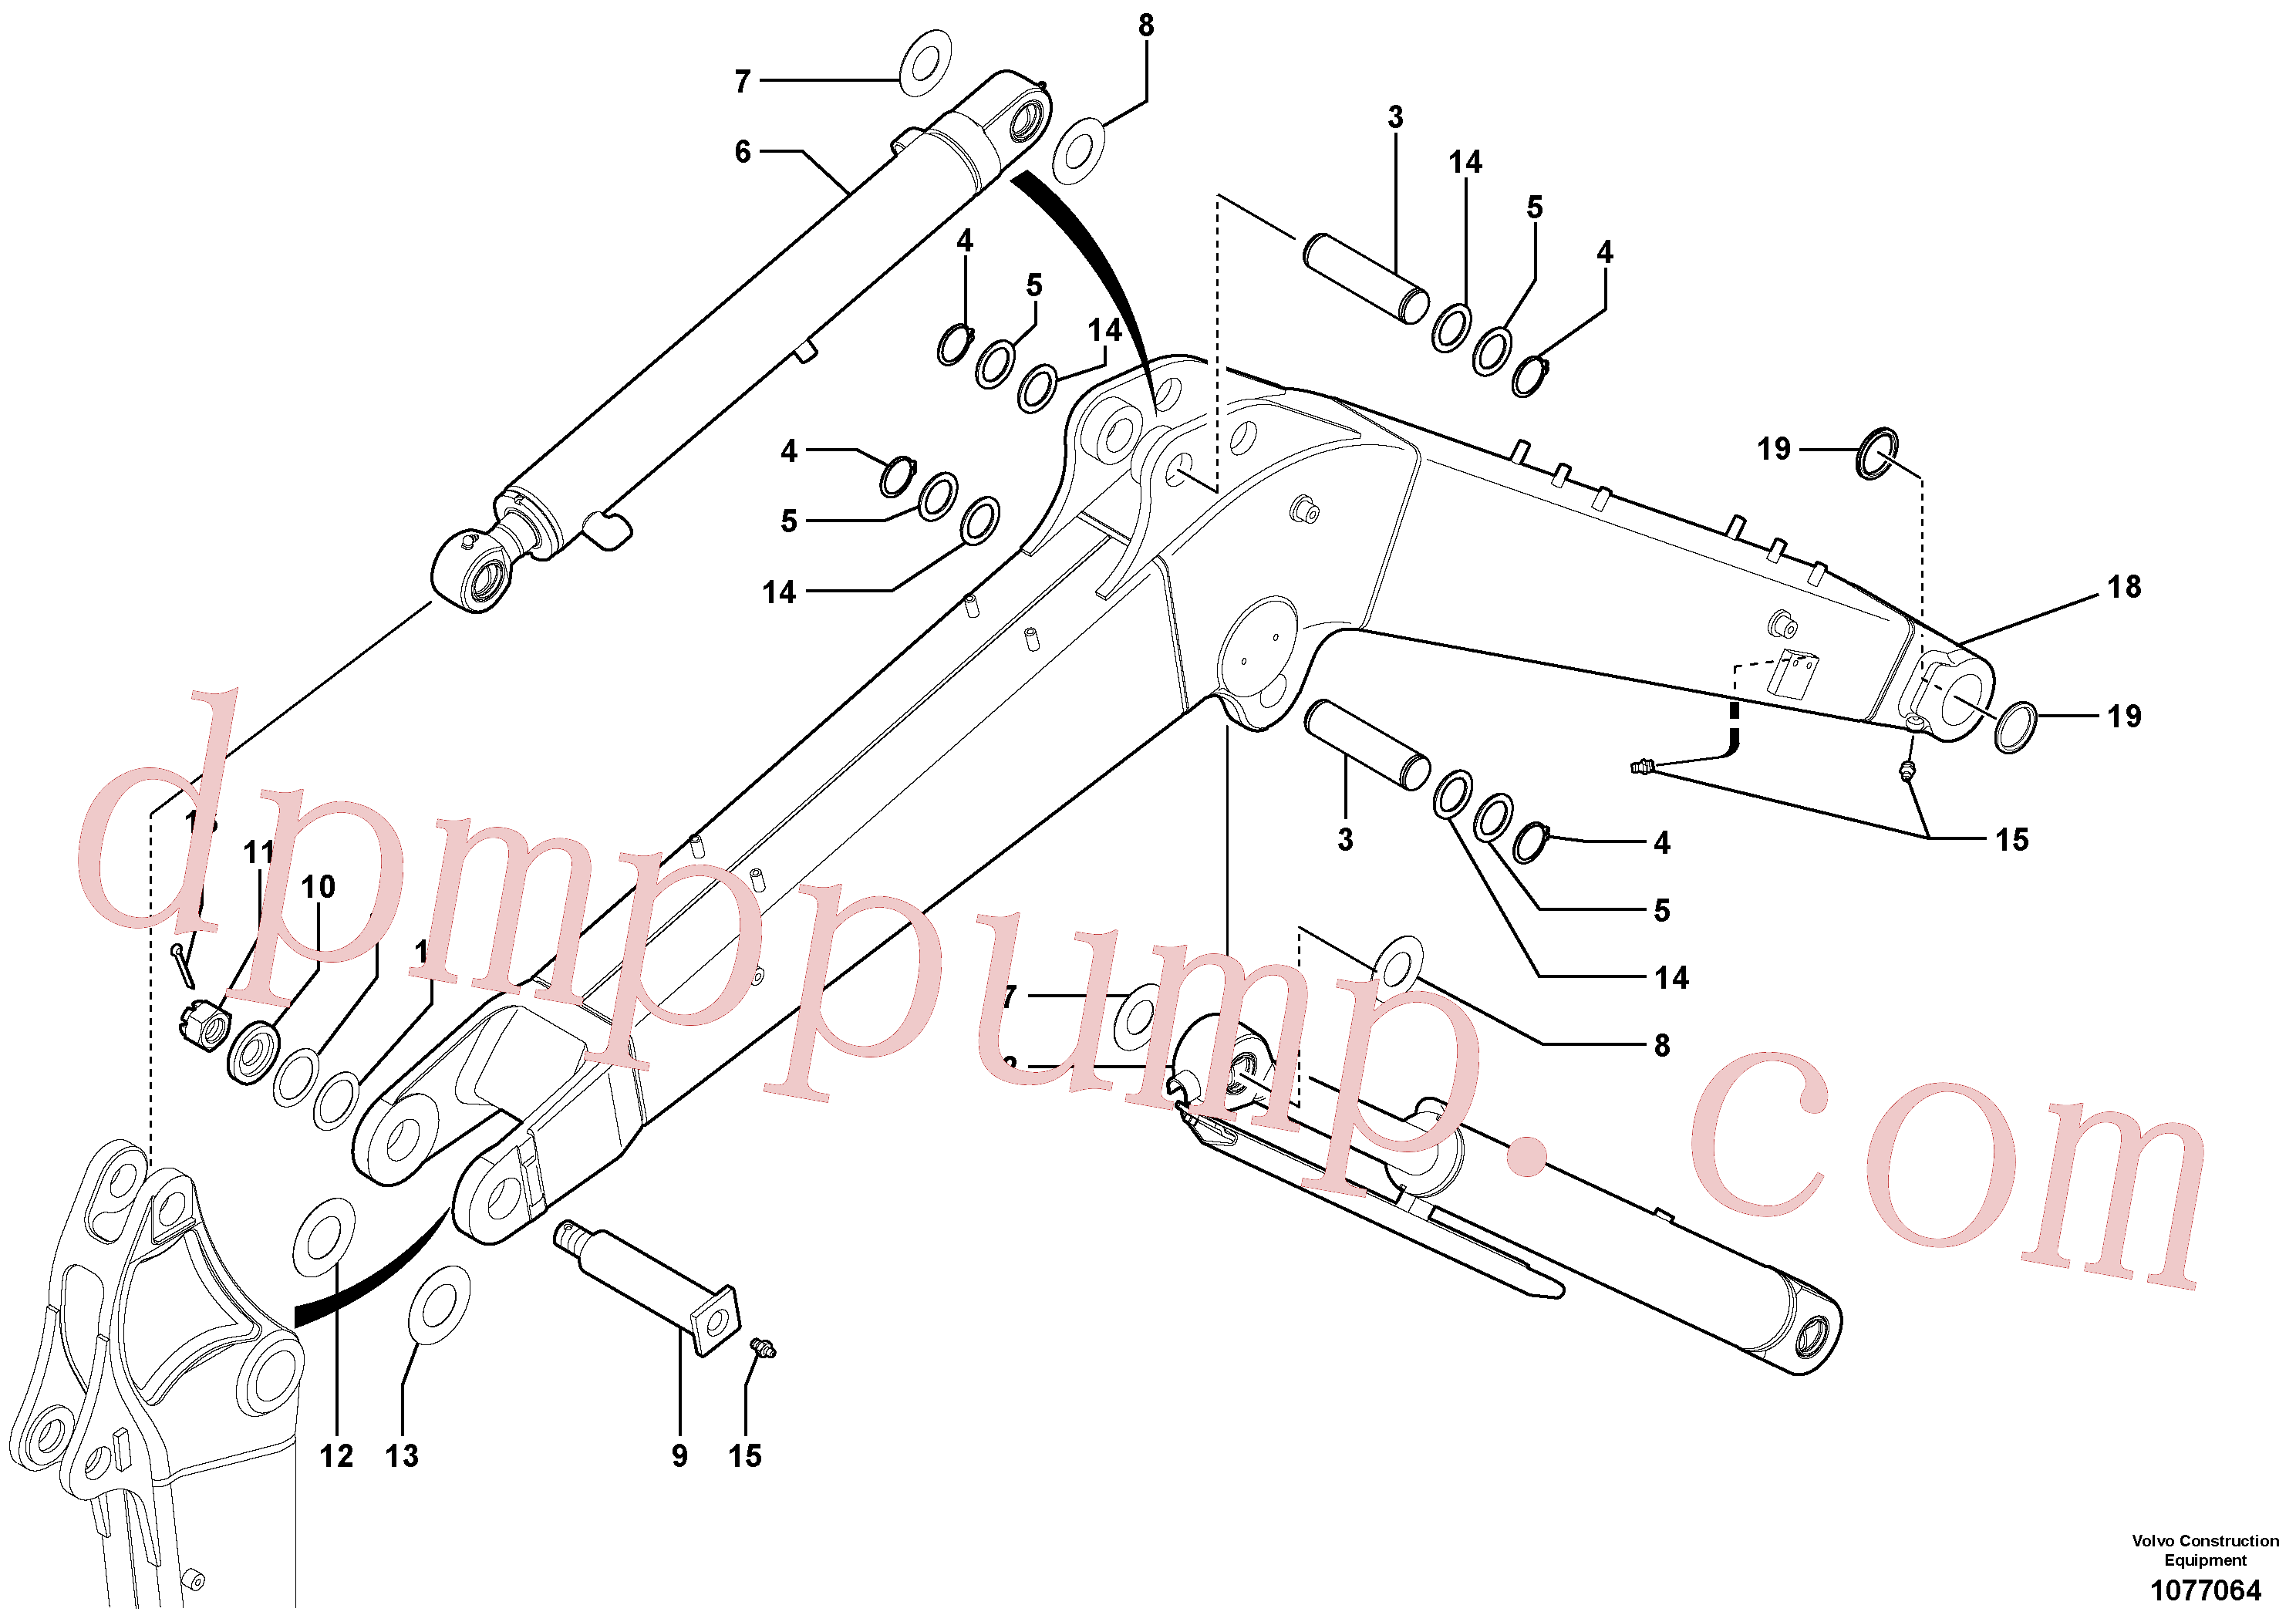 VOE11802309 for Volvo Boom(1077064 assembly)